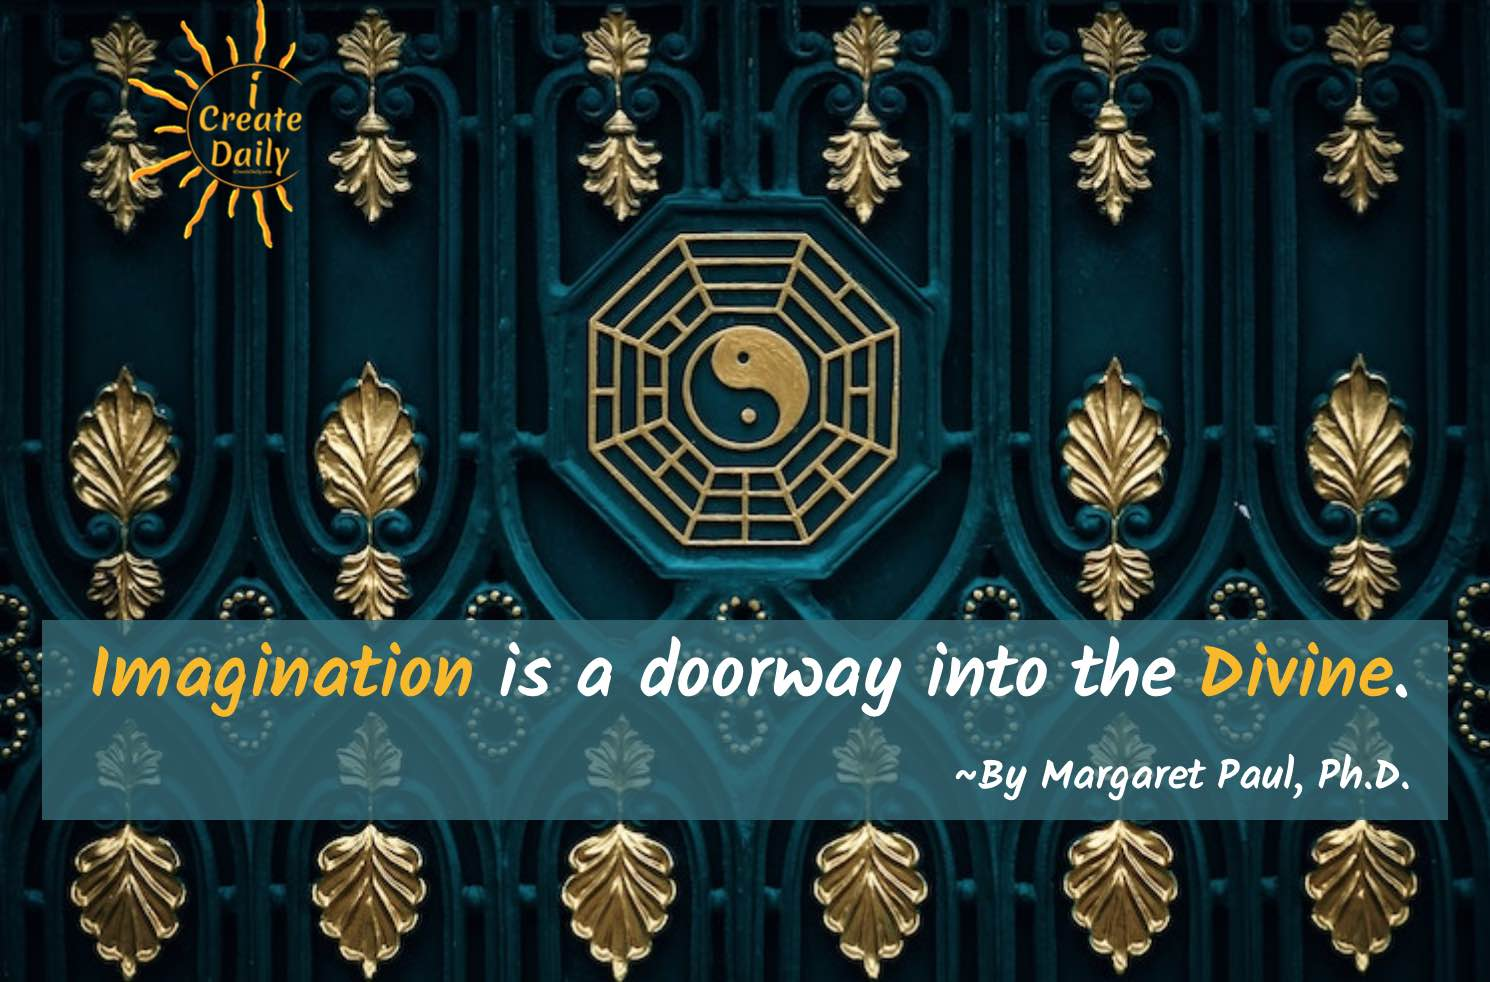 Imagination is a doorway into the Divine. ~Margaret Paul, Ph.D., relationship expert, author, artist #ConsciousCreators #ConsciousCreation #Imagination #CreativeSpirituality #iCreateDaily